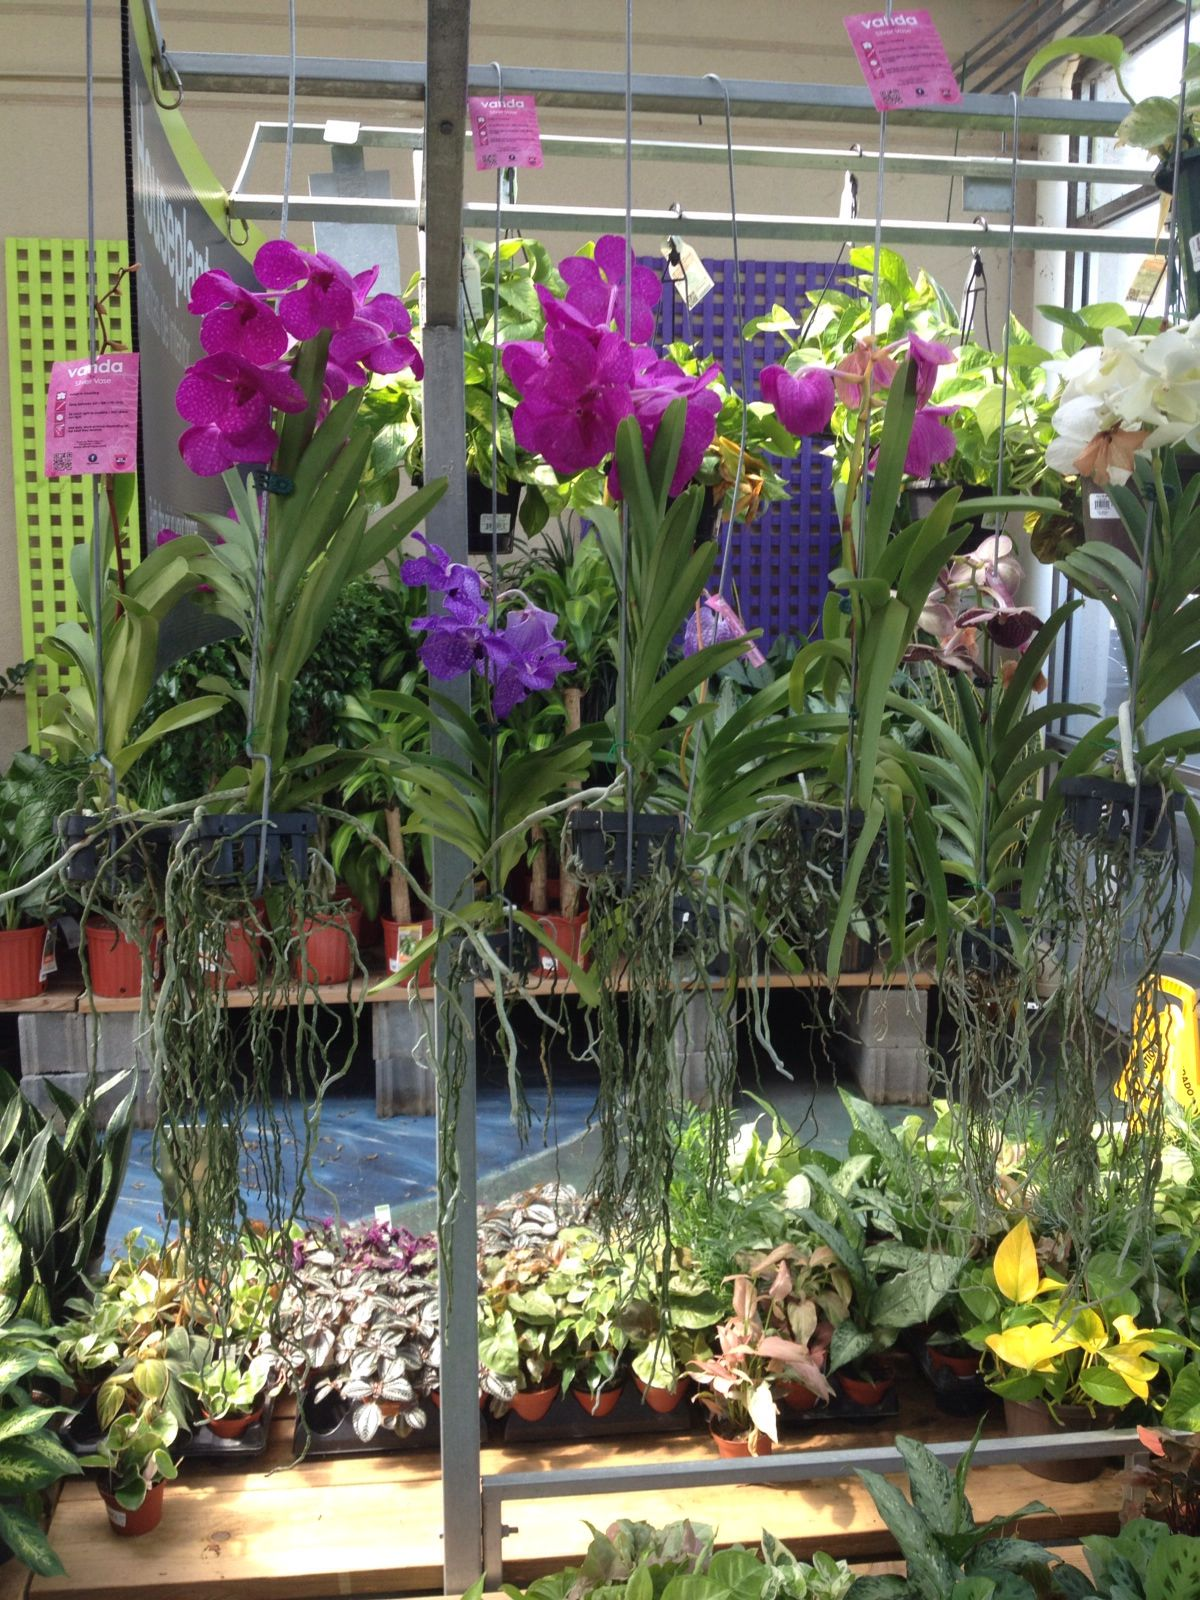 Vanda Orchids At Home Depot In Greensboro Nc